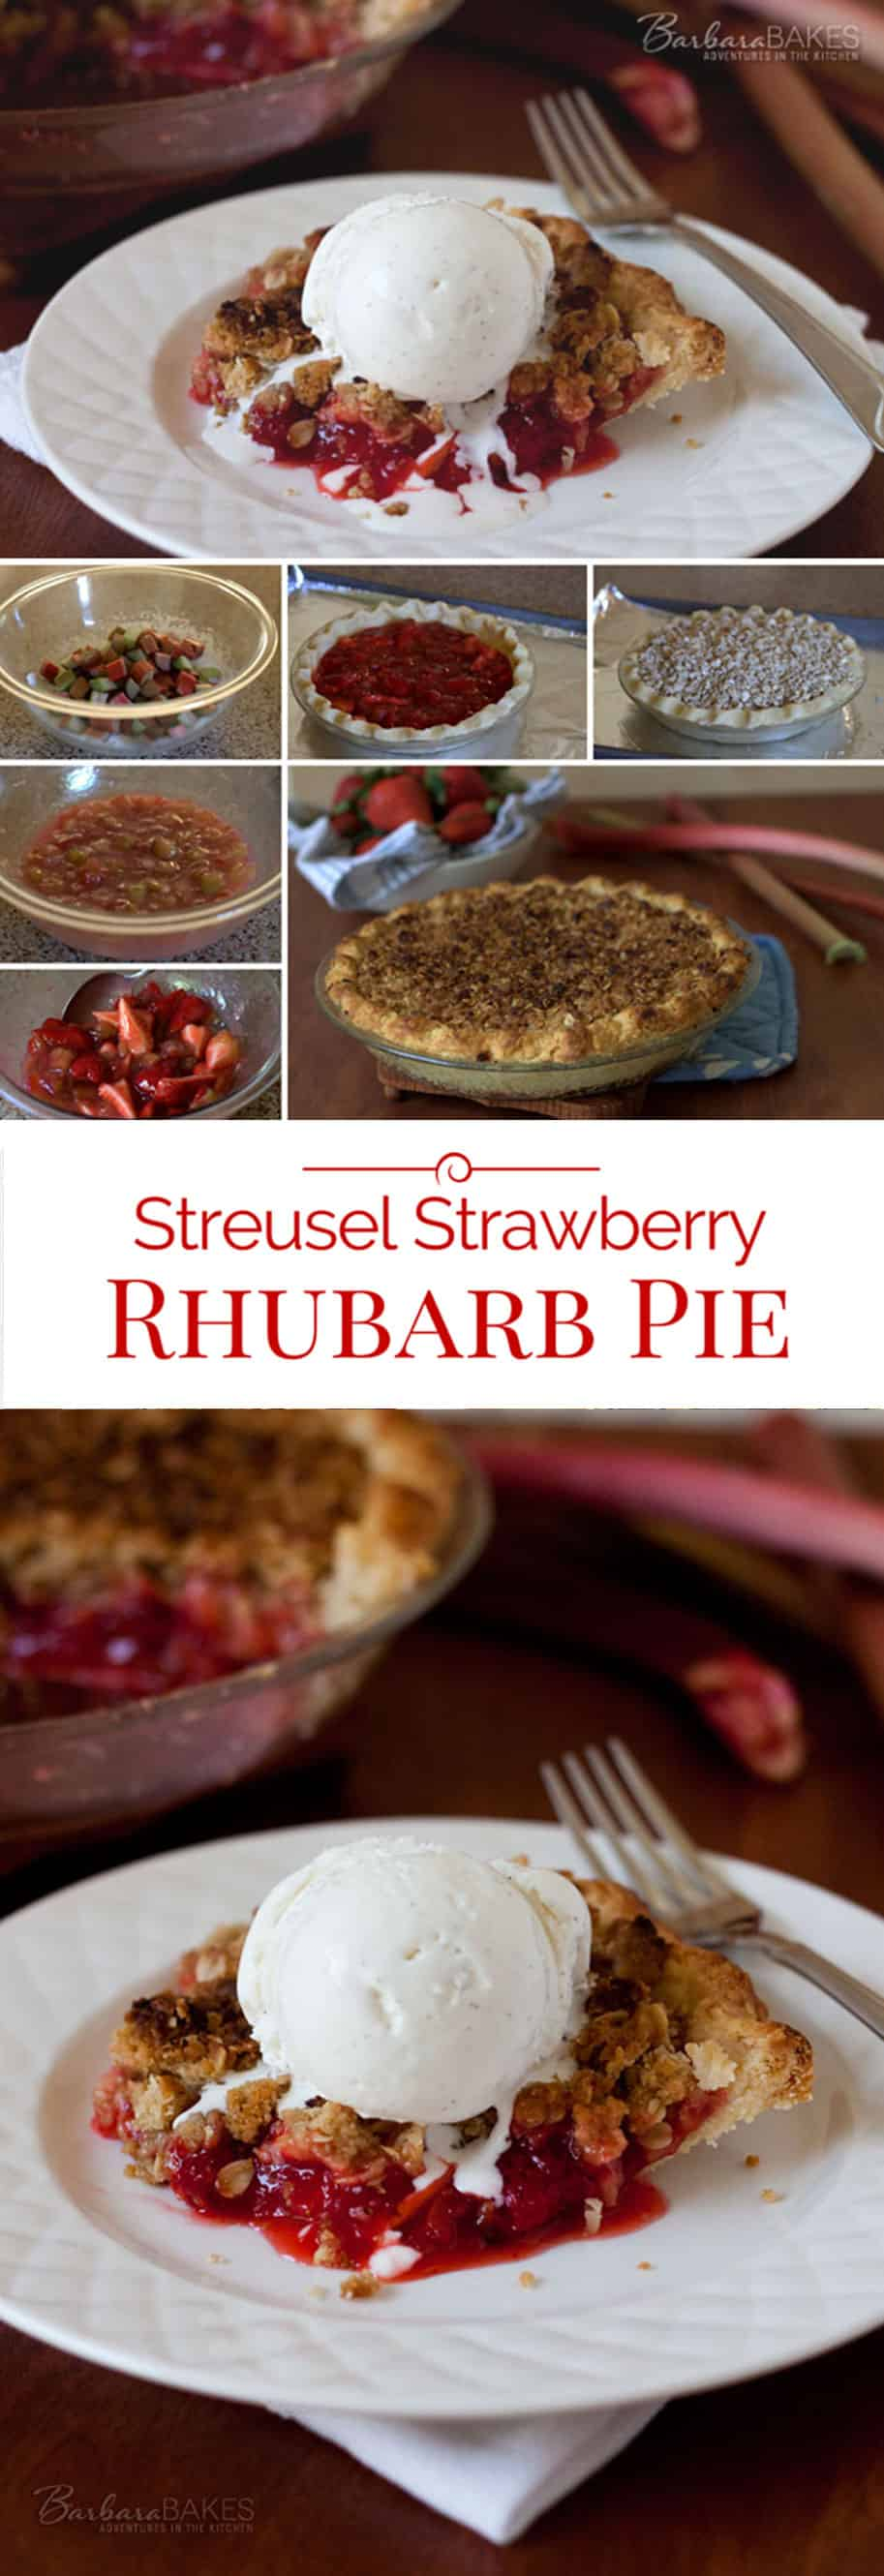 Fresh, sweet strawberries combined with tart rhubarb in a buttery, flaky pie crust and crowned with a sweet, crispy streusel top. A perfect combination of flavors and textures.